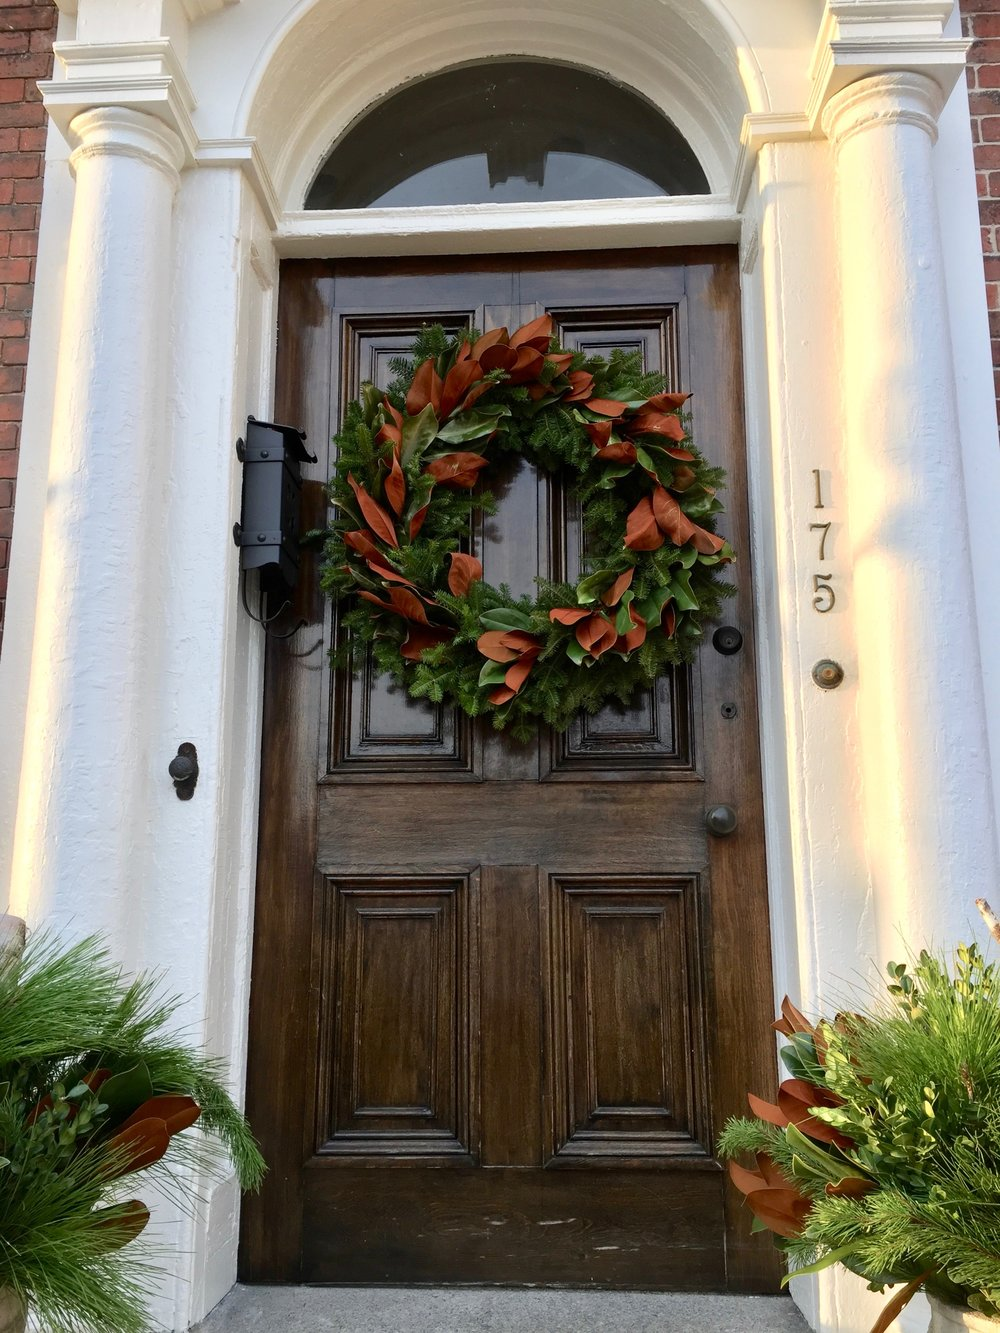 Christmas Wreath ideas from New England - portsmouth nh 12.jpg